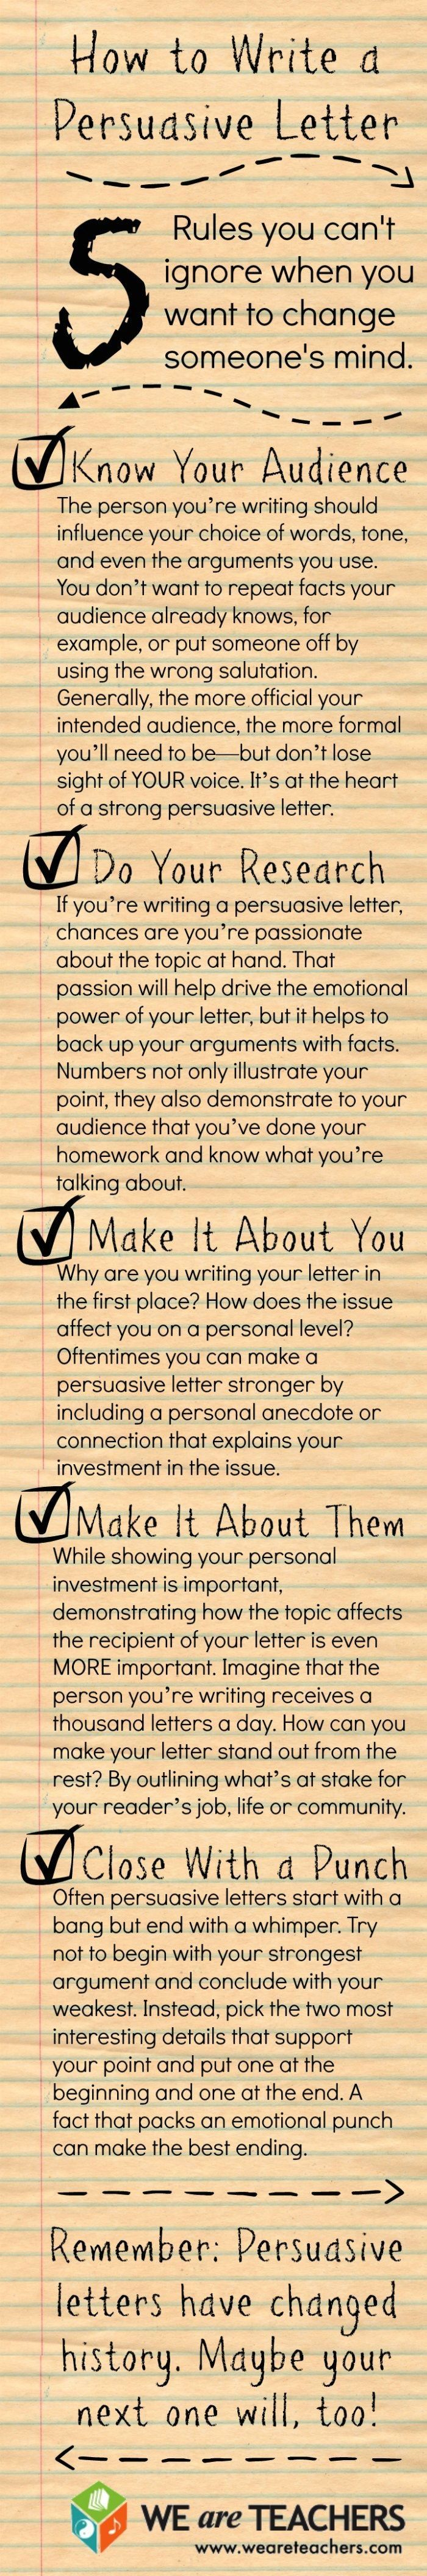 how to start writing a persuasive essay How to write a persuasive essay - outline, format, structure, topics, samples any persuasive essay outline always deals with the proper establishment of the facts in the work this is the reason it is crucial to know the material very well before writing a persuasive essay in order to choose the most.